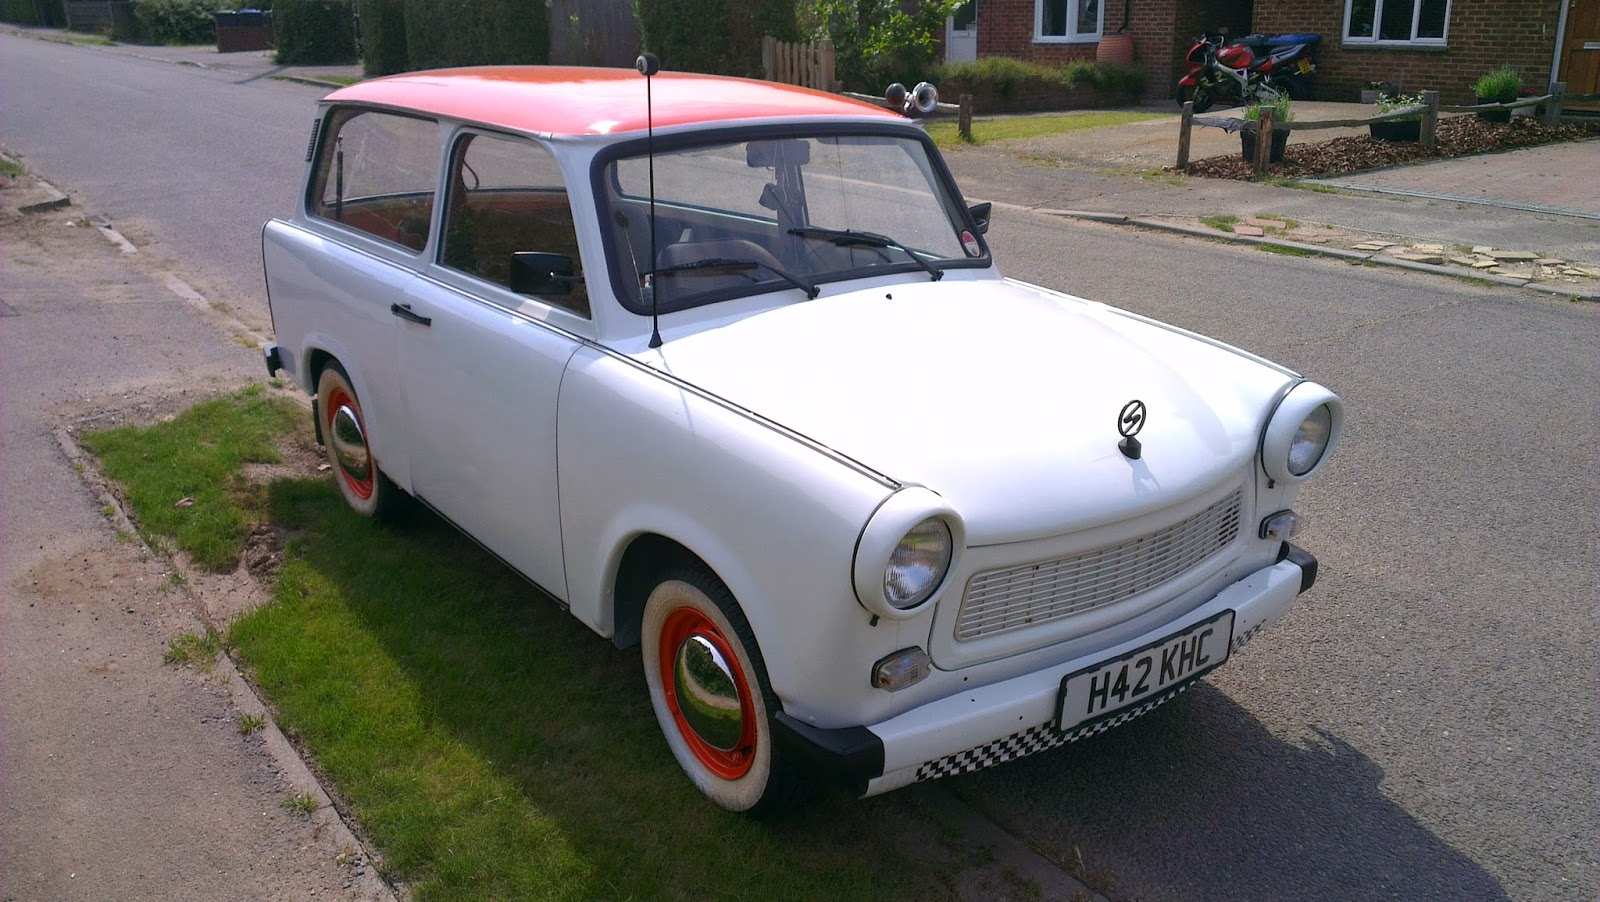 Delightful The Car Is A June 1990, One Of The Last 601u0027s Built. It Was Exported To  Hungary And Came To The UK In 2009. It Was Sold To An Aircraft Mechanic, ...